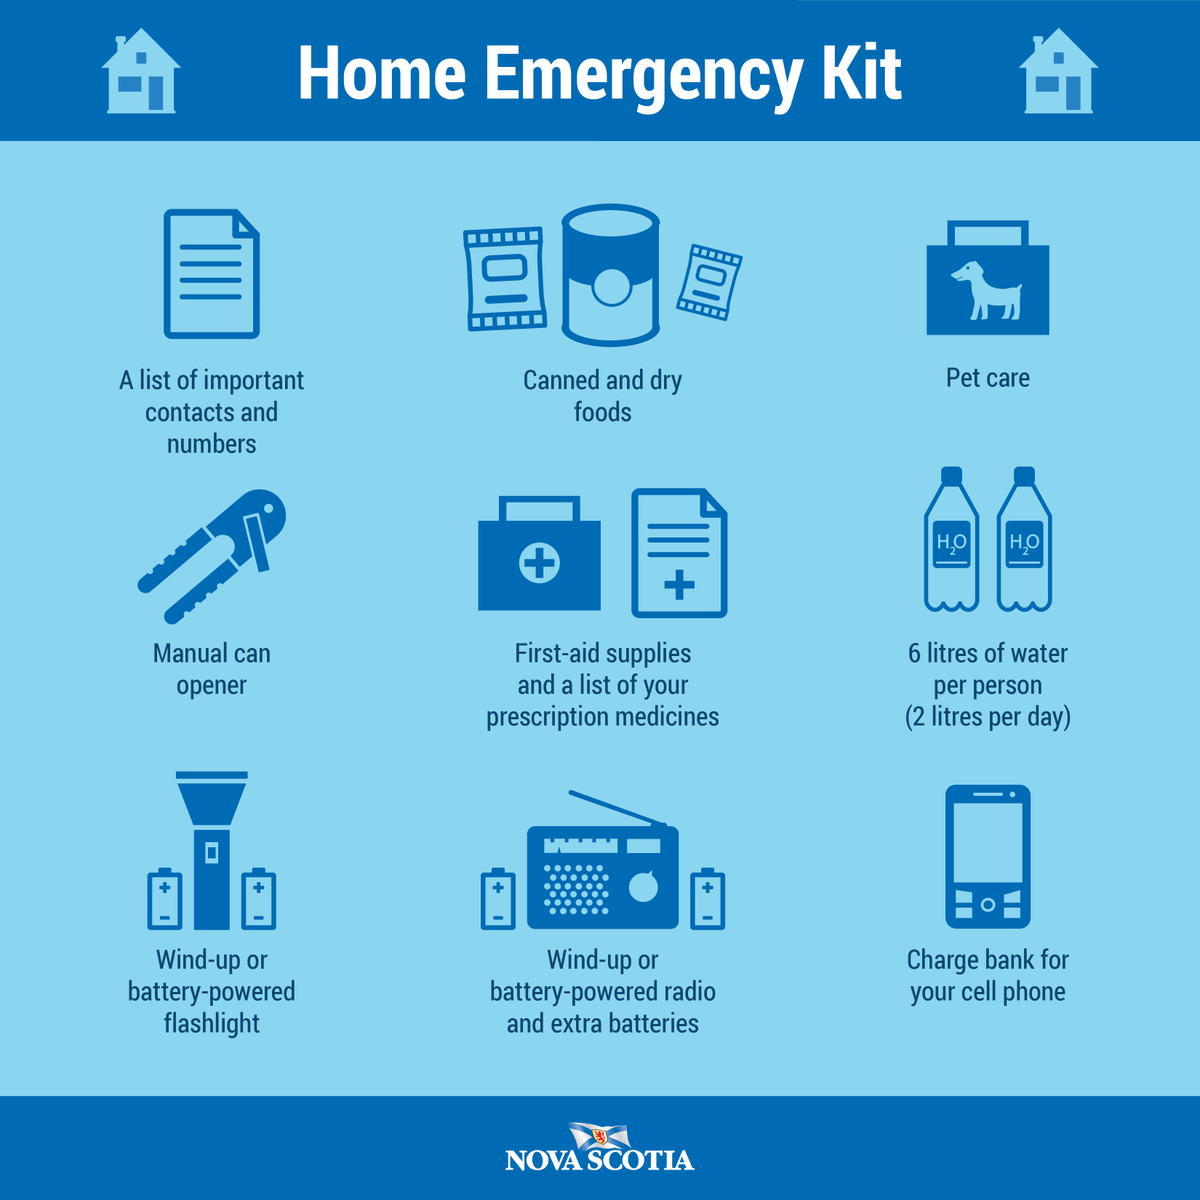 Nova scotia emo on twitter remember that you need to be ready to of yourself and your family for 72 hours for more info on what should be in your emergency kit visit httpbit2xi9f83 nsstormpicitter solutioingenieria Images